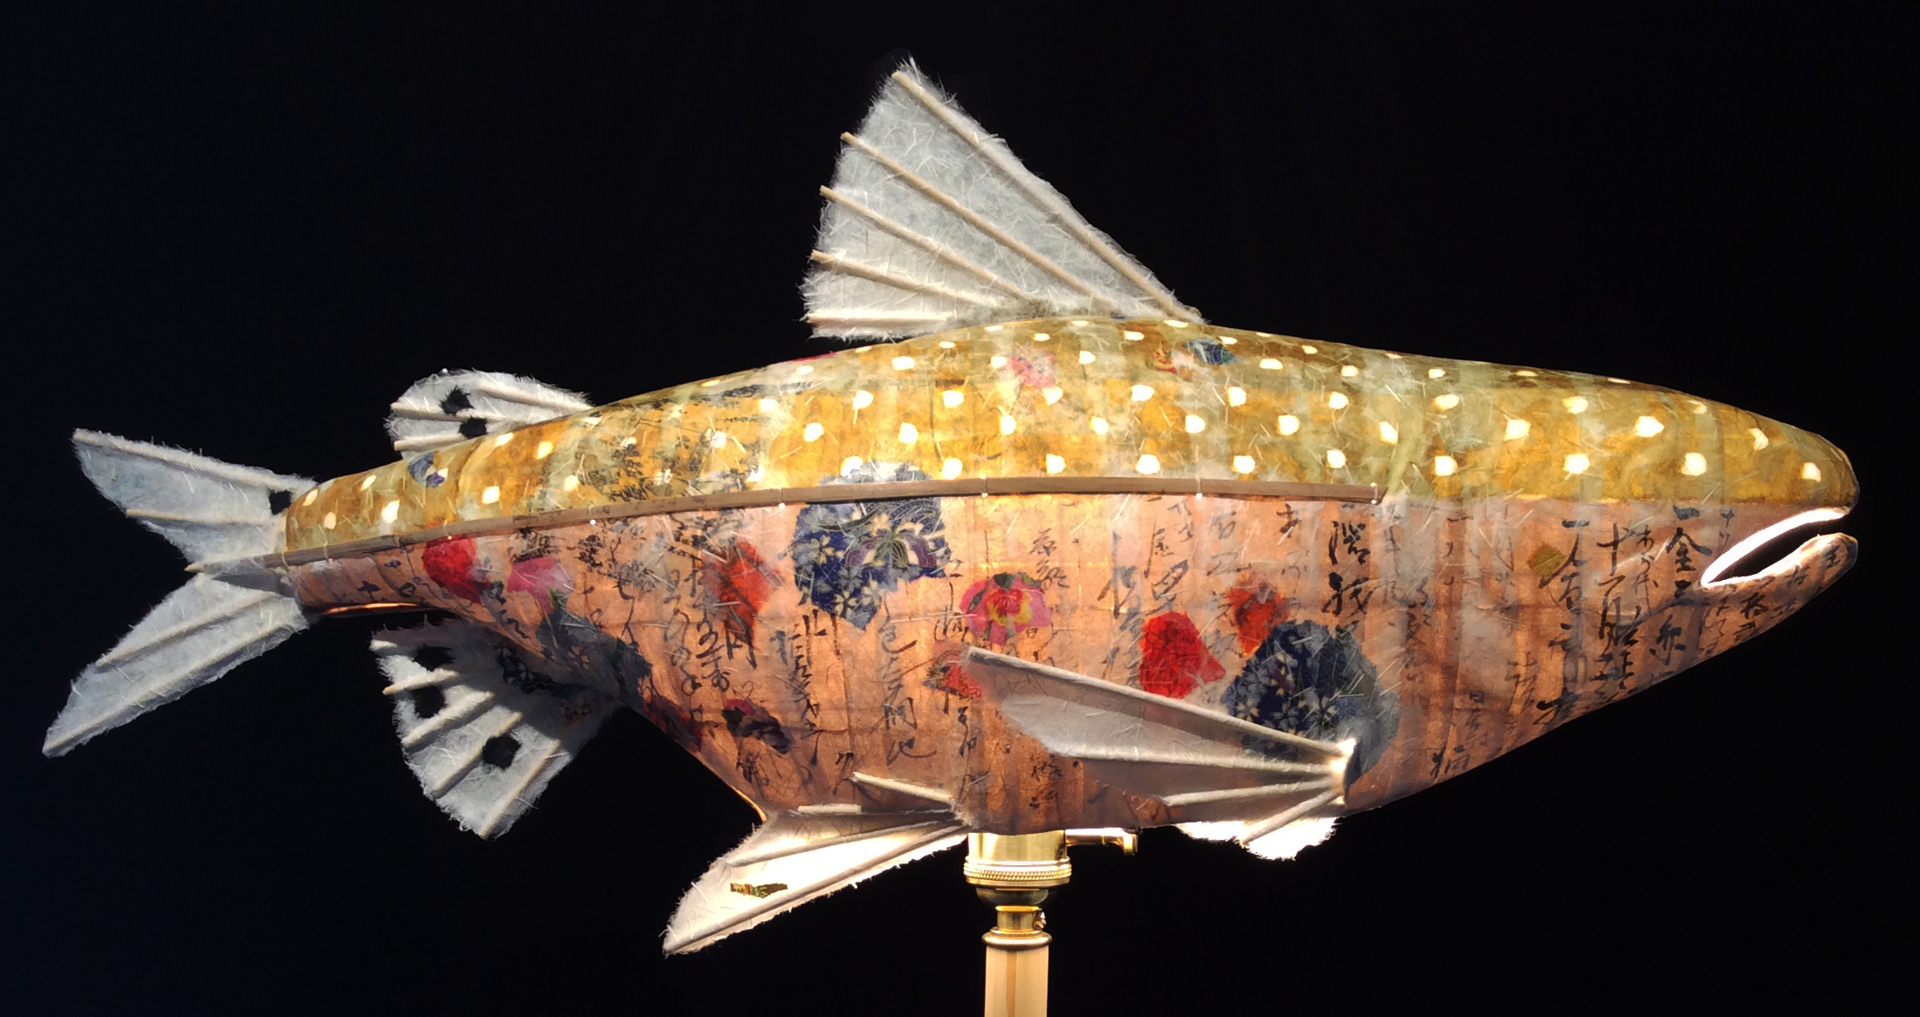 White Pebble Peace Salmon by Elaine Hanowell